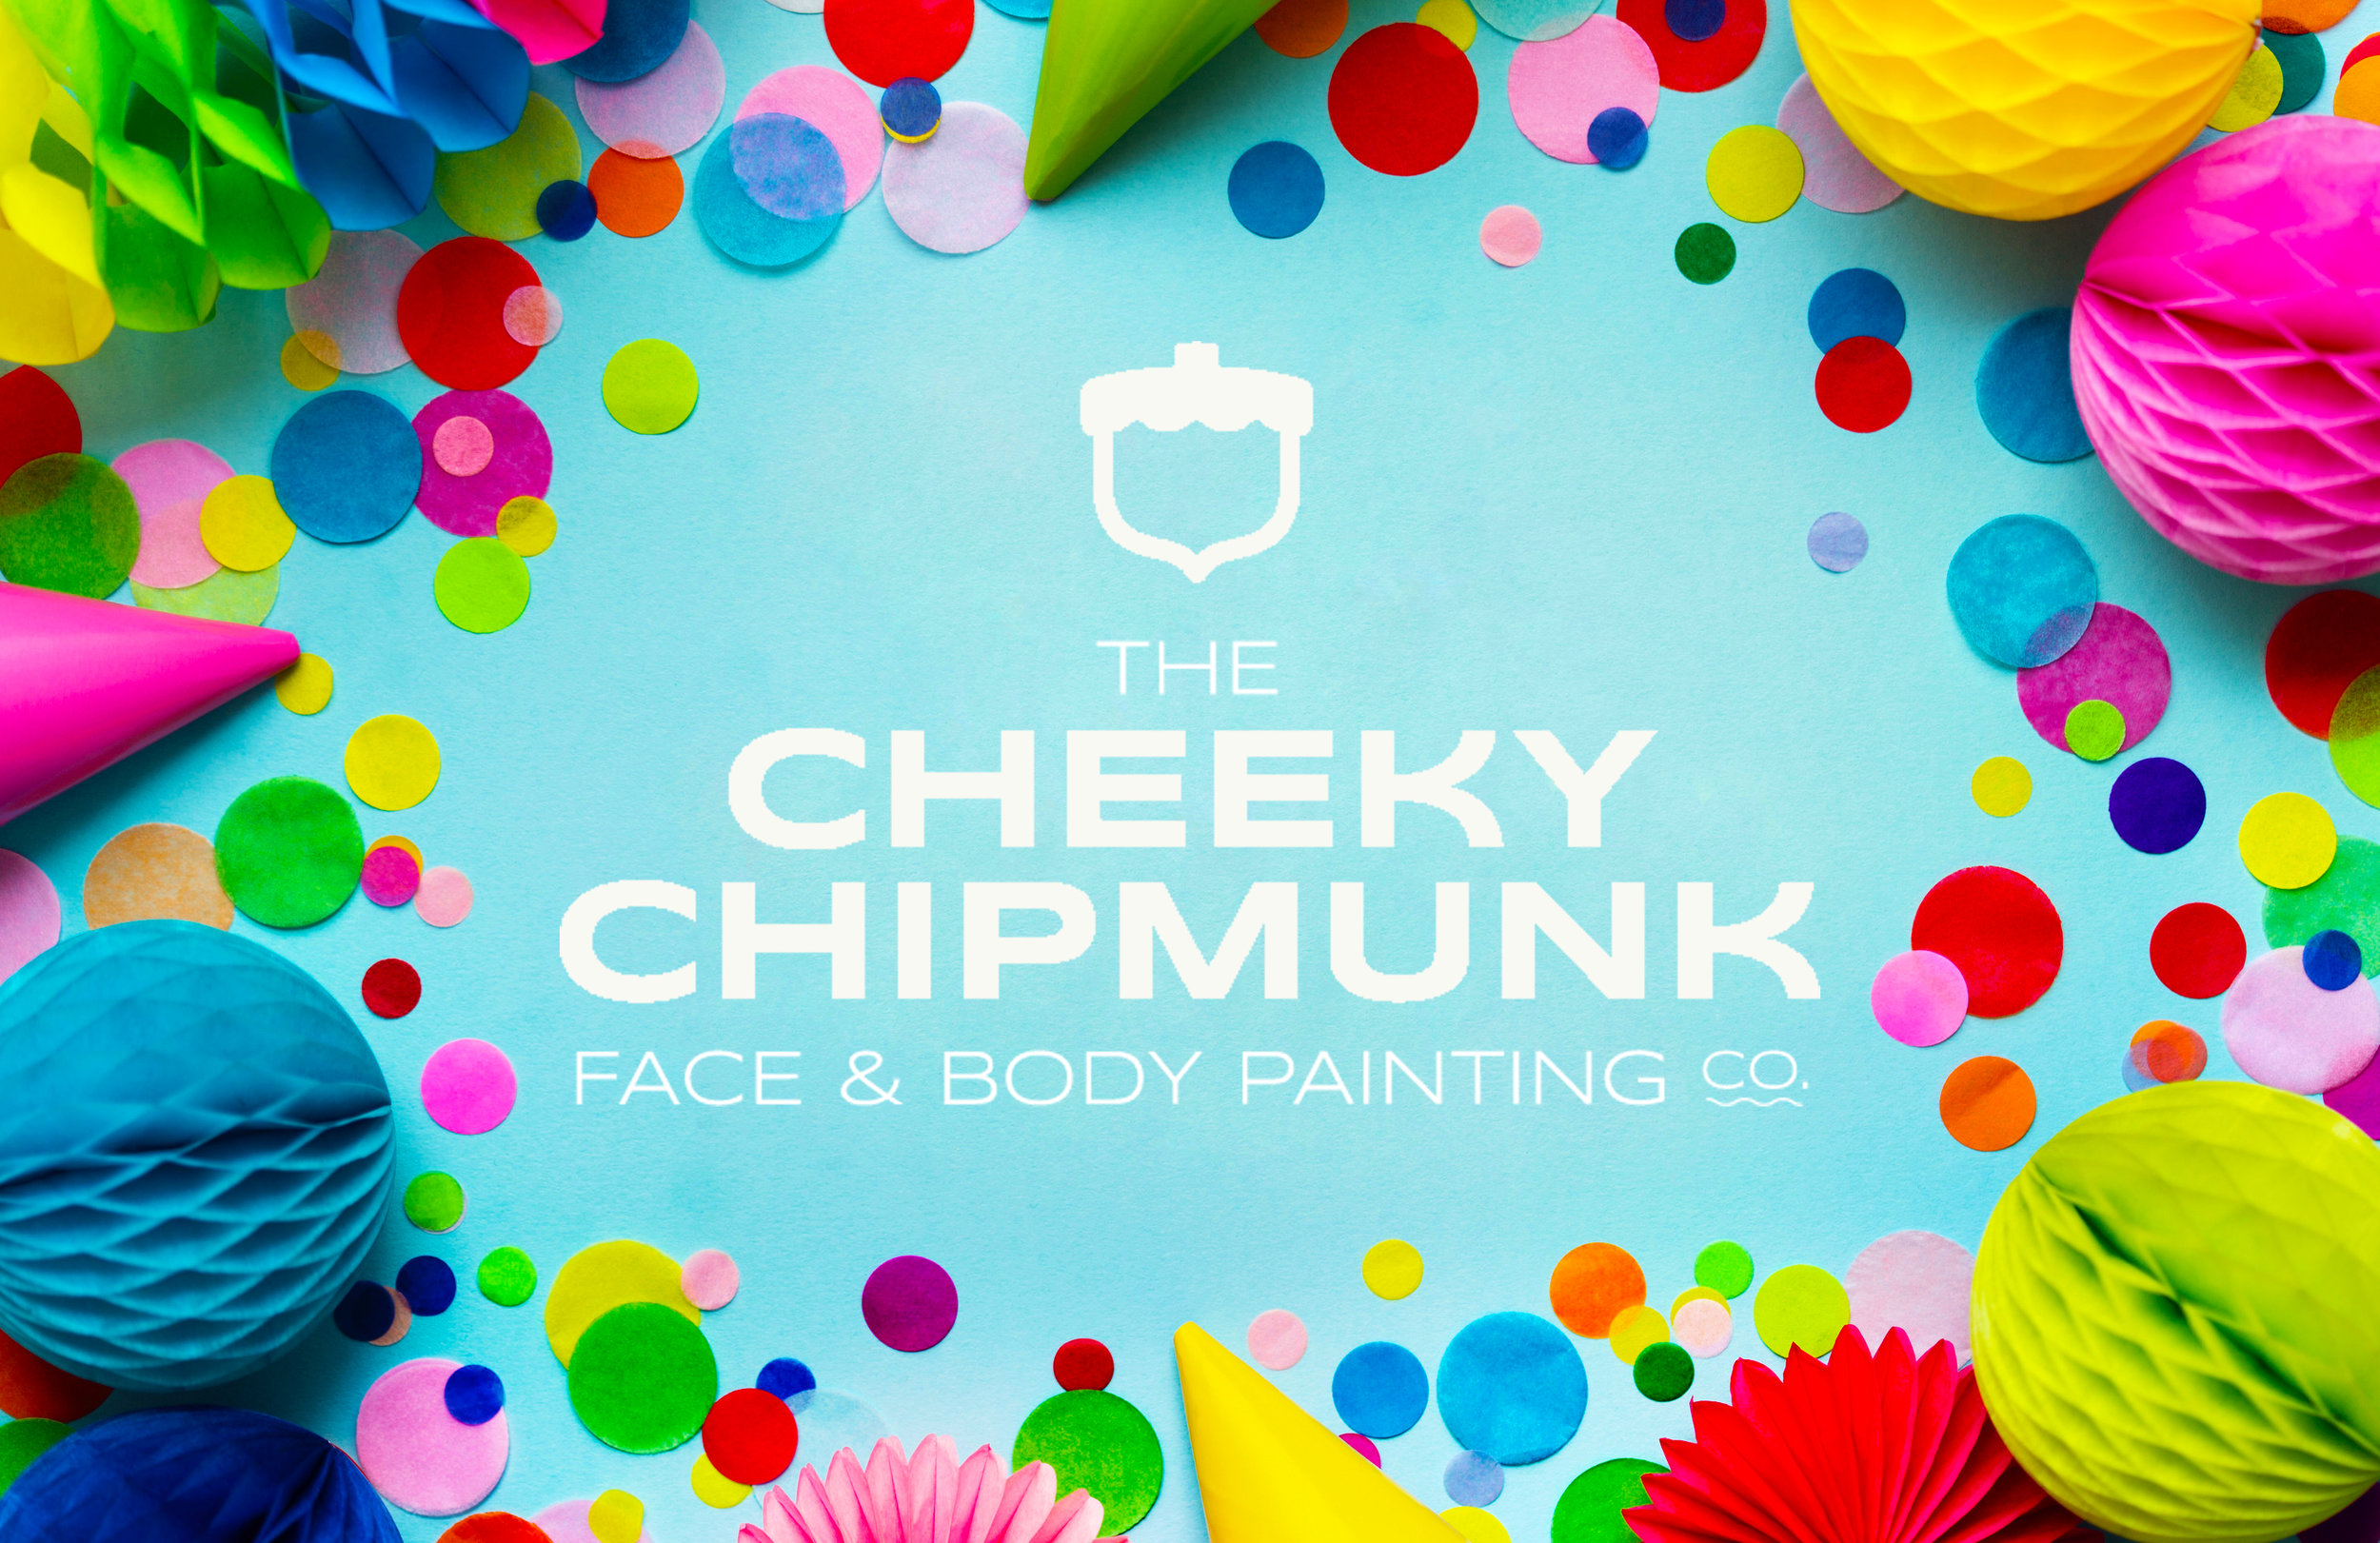 lenore-koppelman-the-cheeky-chipmunk-logo-on-blue-party-background-confetti-with-face-painting-border